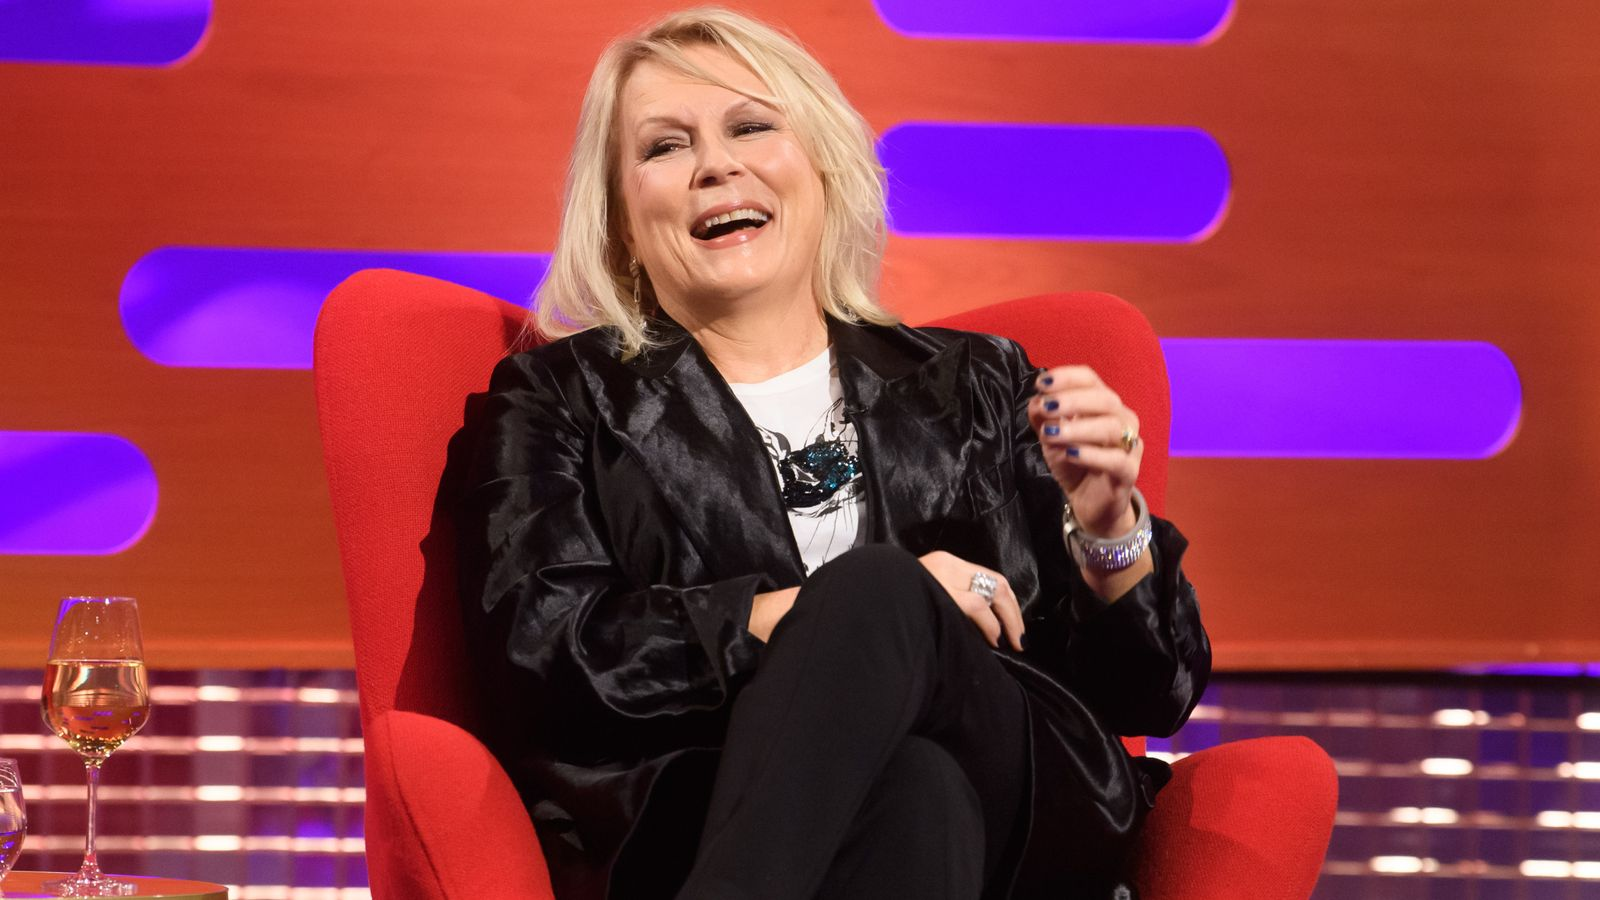 Jennifer Saunders says Absolutely Fabulous would not get made today 'because everything is sensitive'